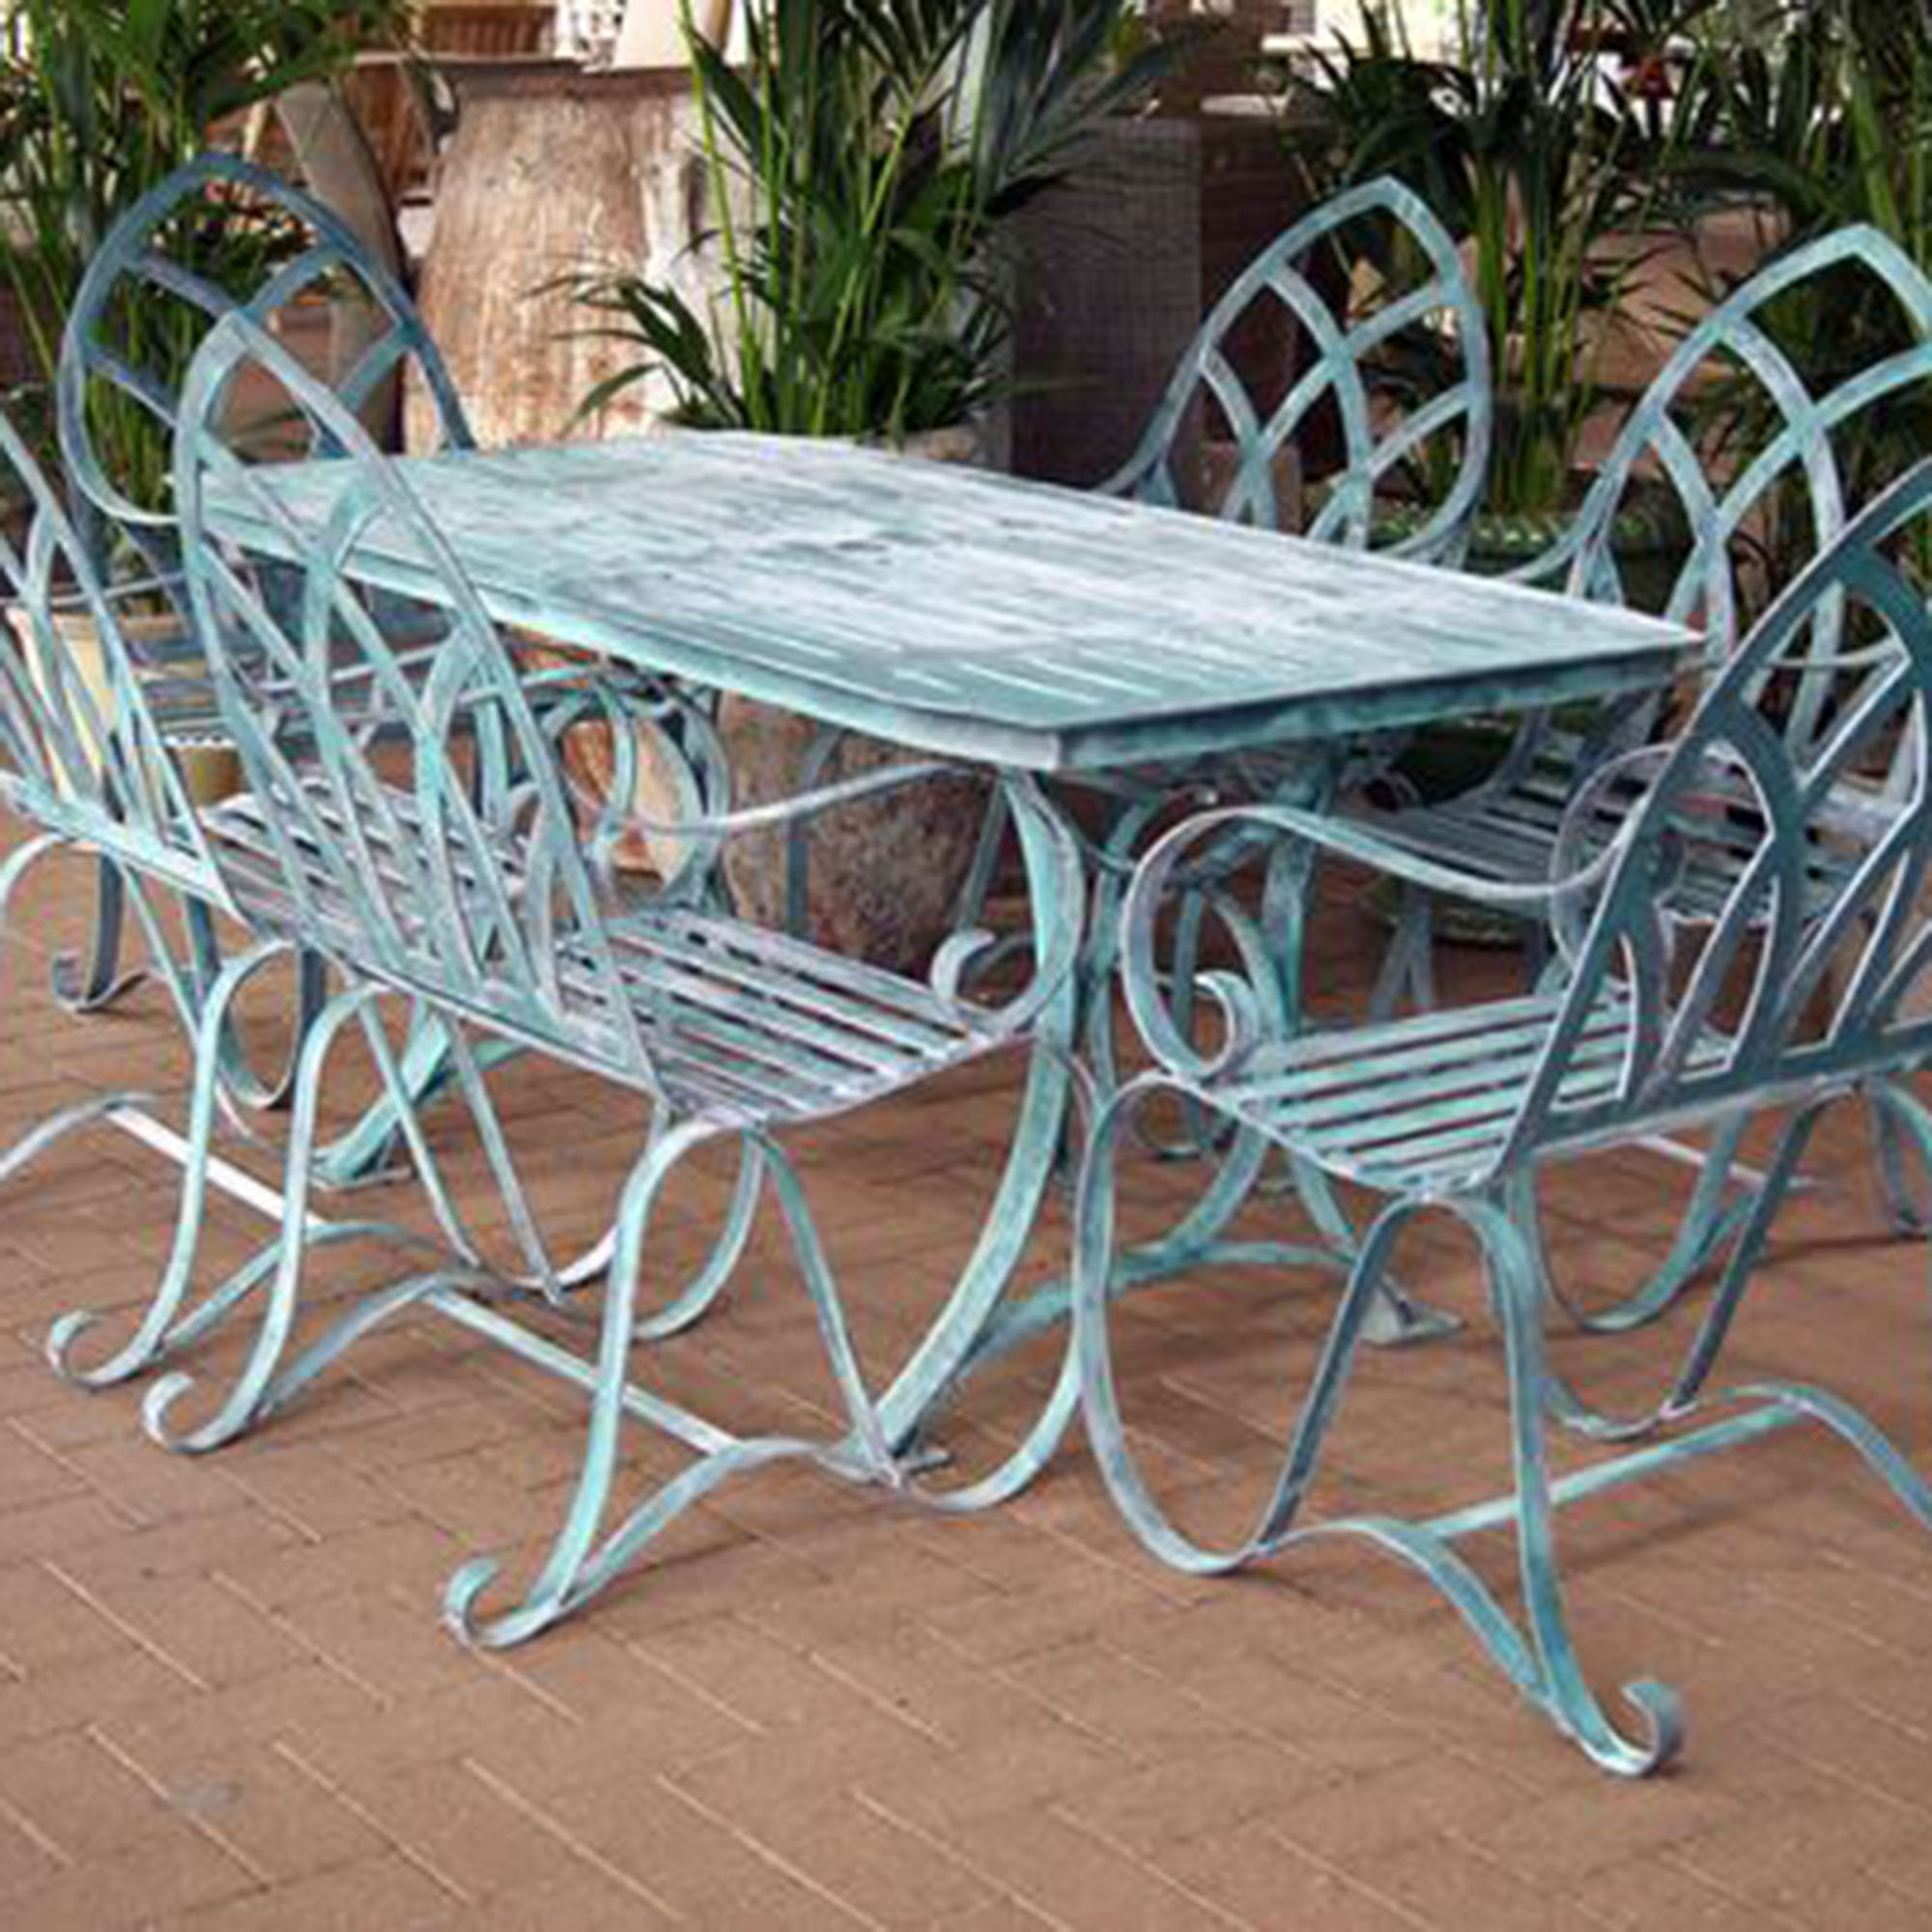 17d6c061bae8 Why you should buy cast aluminum garden furniture